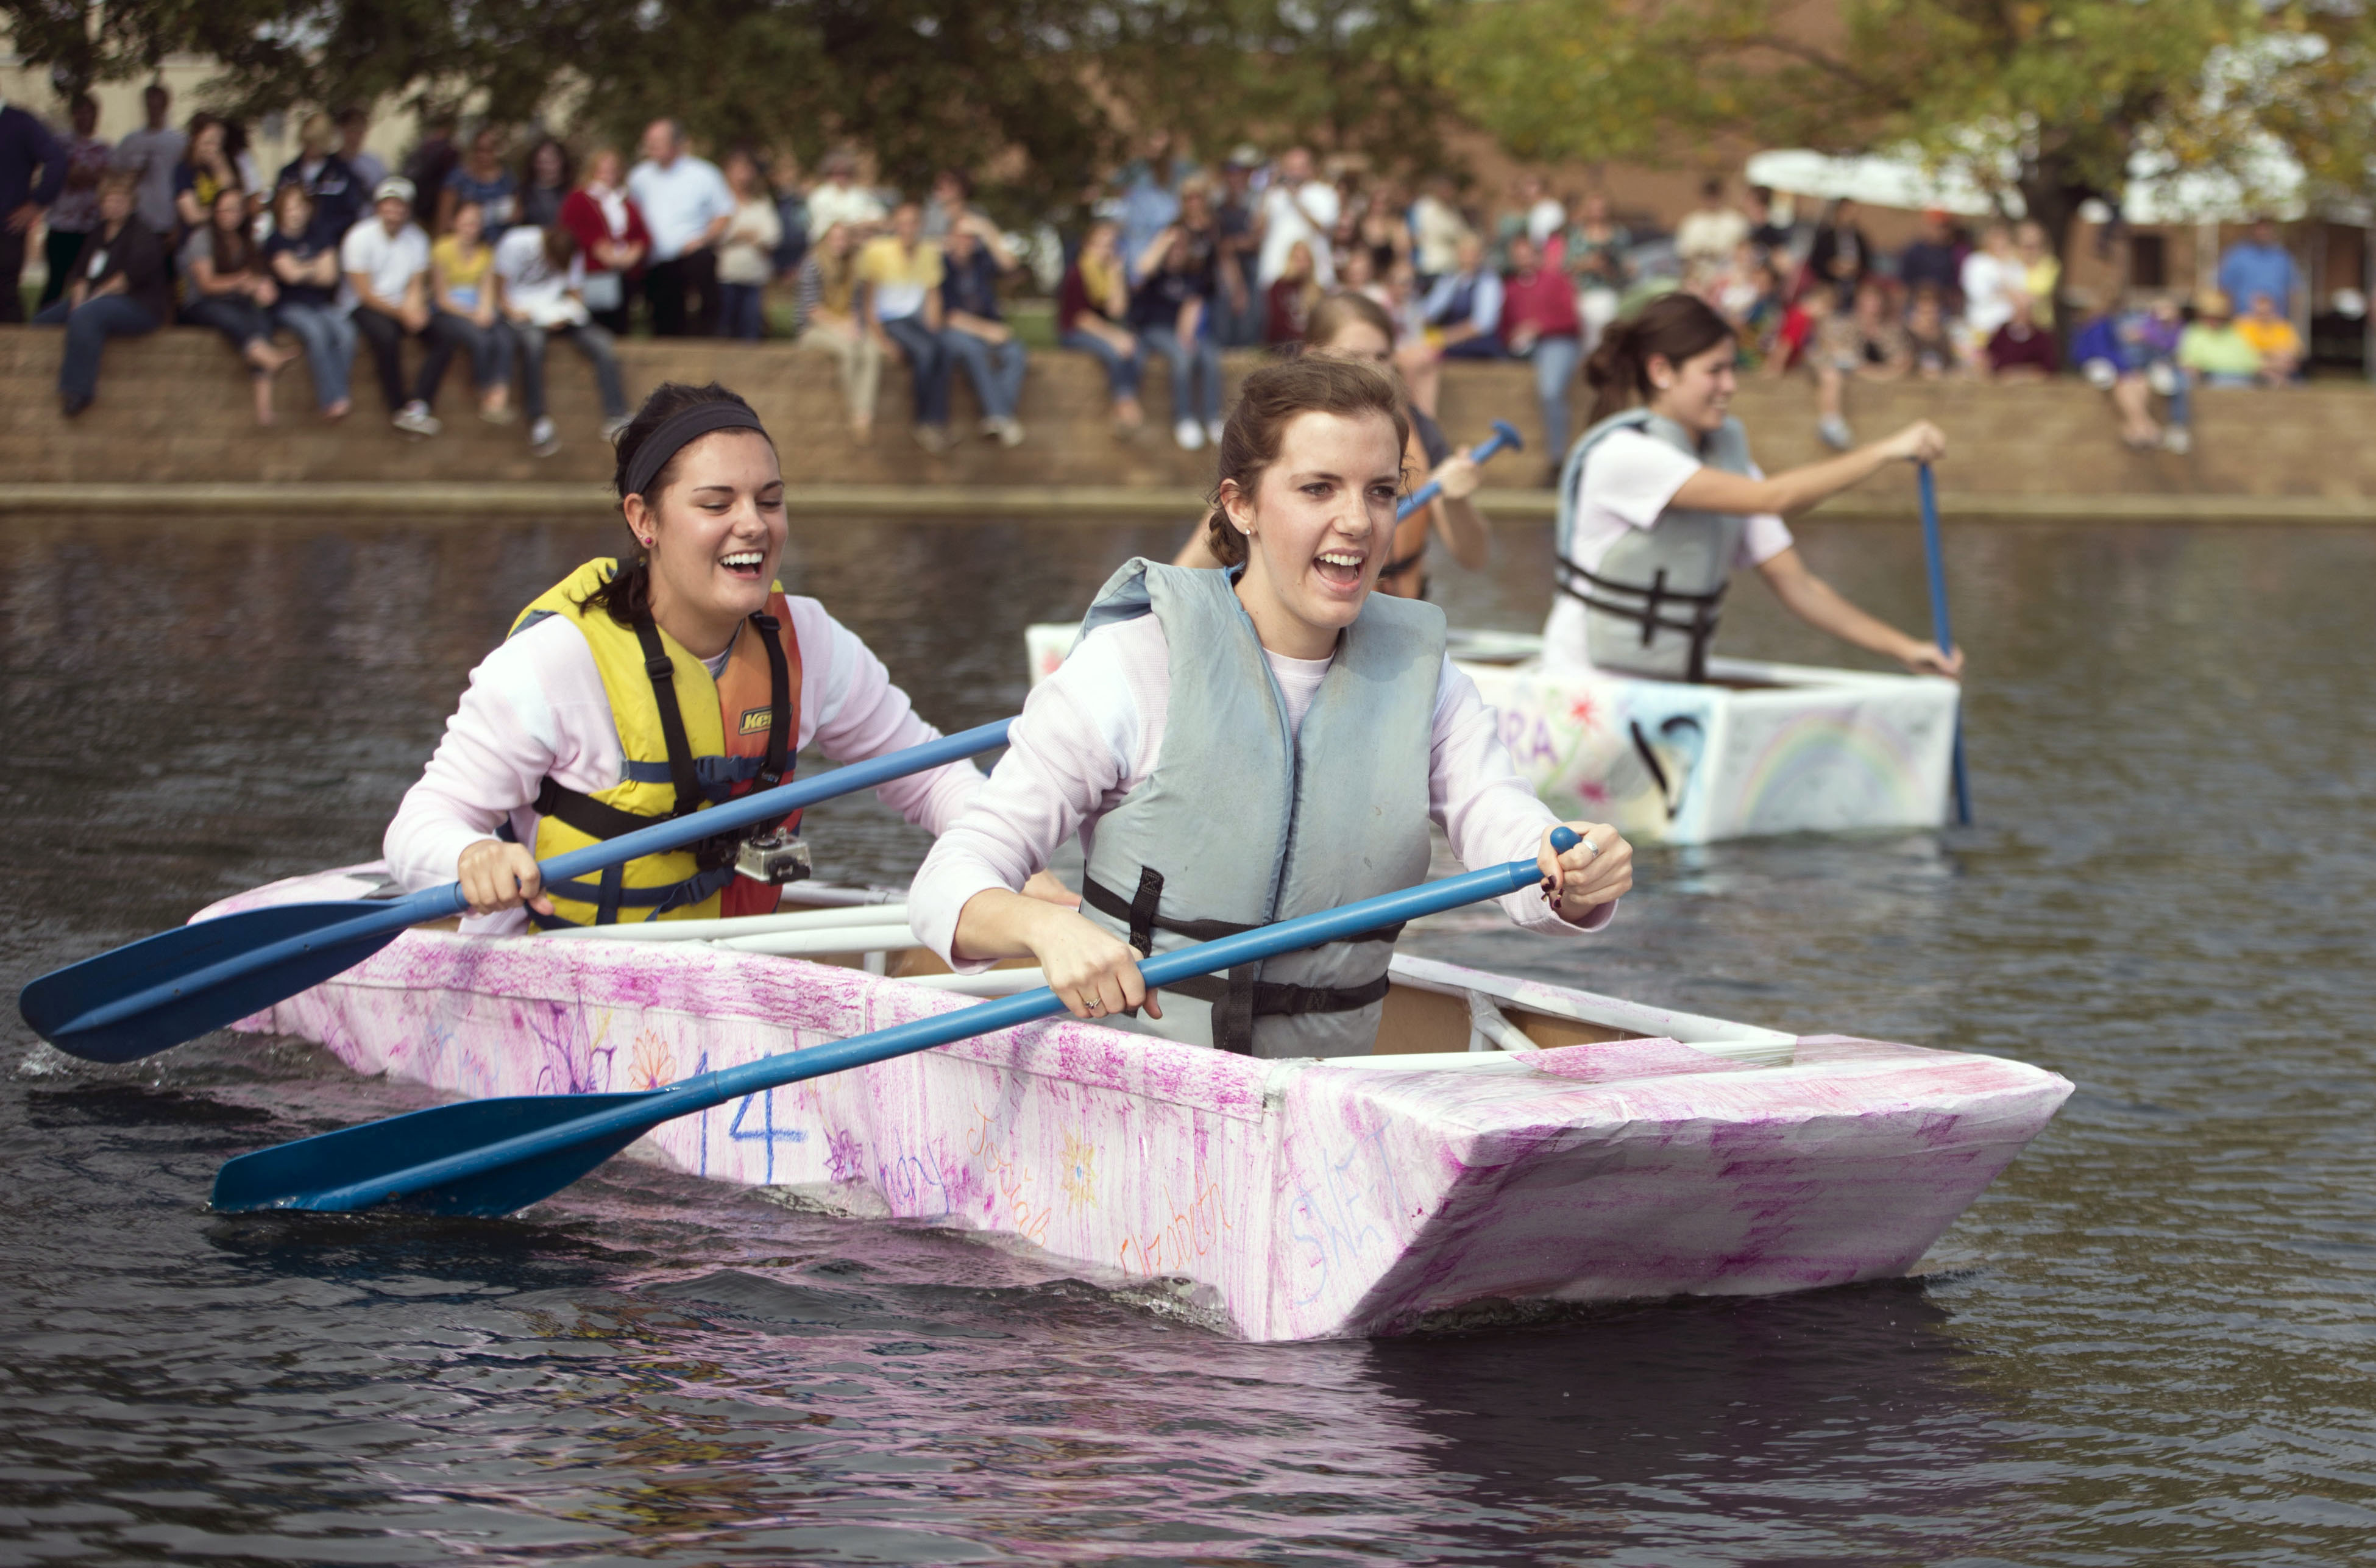 The traditional cardboard canoe race across Cedar Lake will take place again this year on October 4. Photo credit: Scott L. Huck/Cedarville University